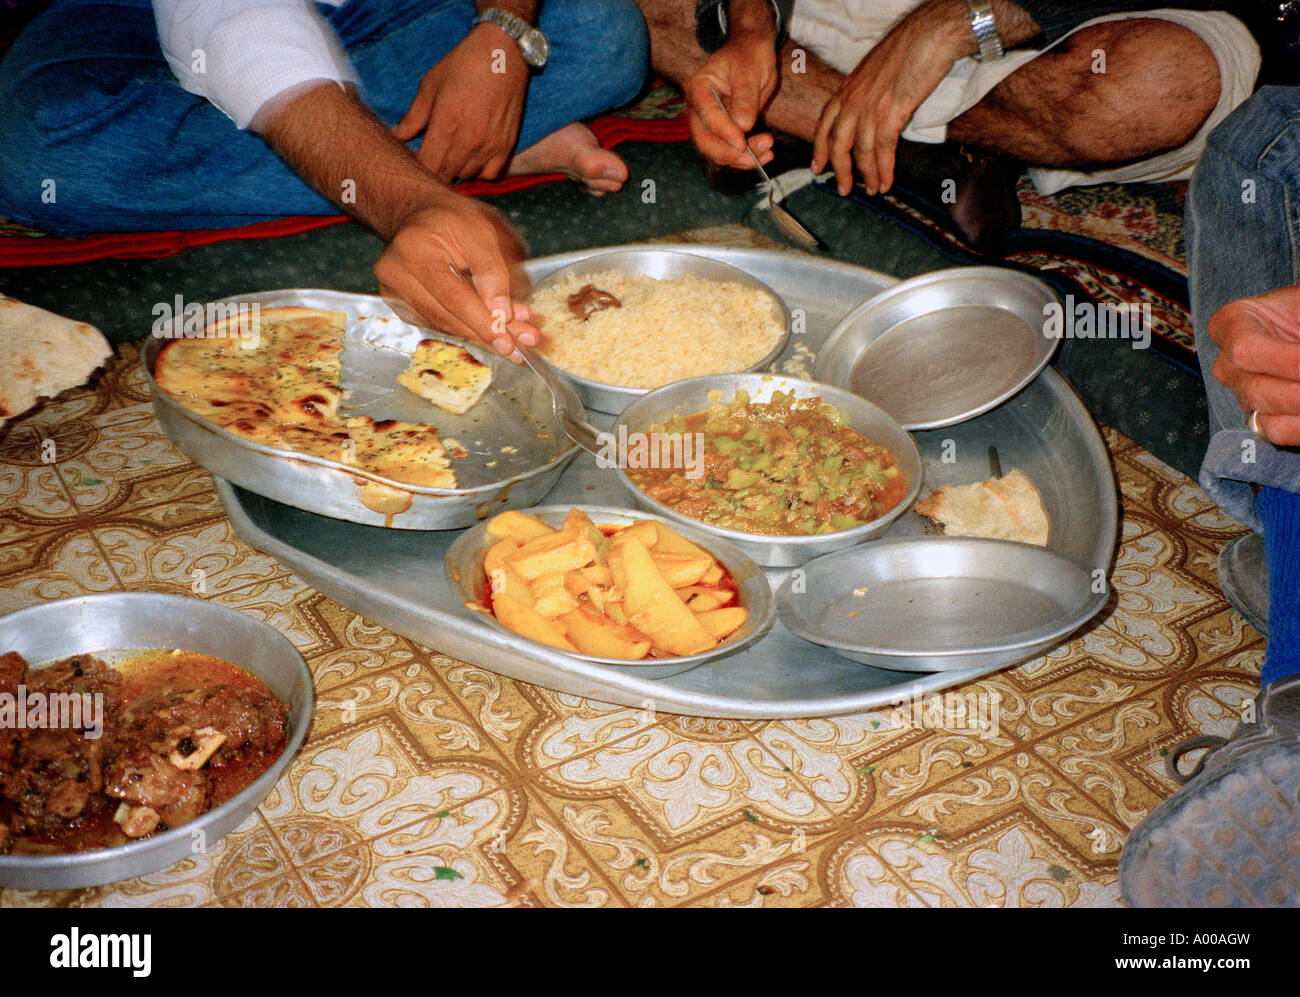 Thula Yemen Traditional Meal Being Served on a Tray on the Floor - Stock Image